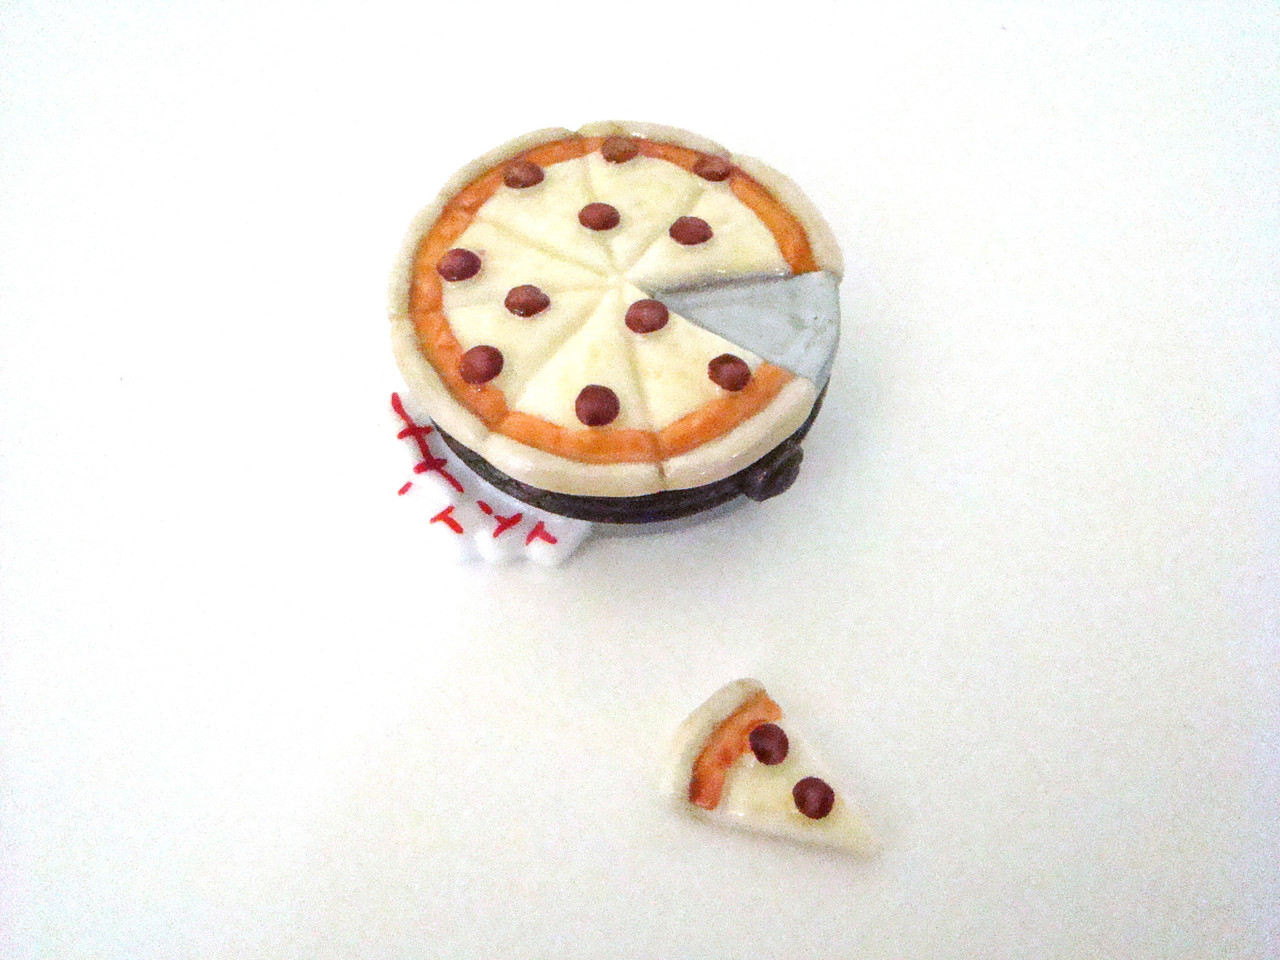 Pizza with pizza slice 31879-9 PHB